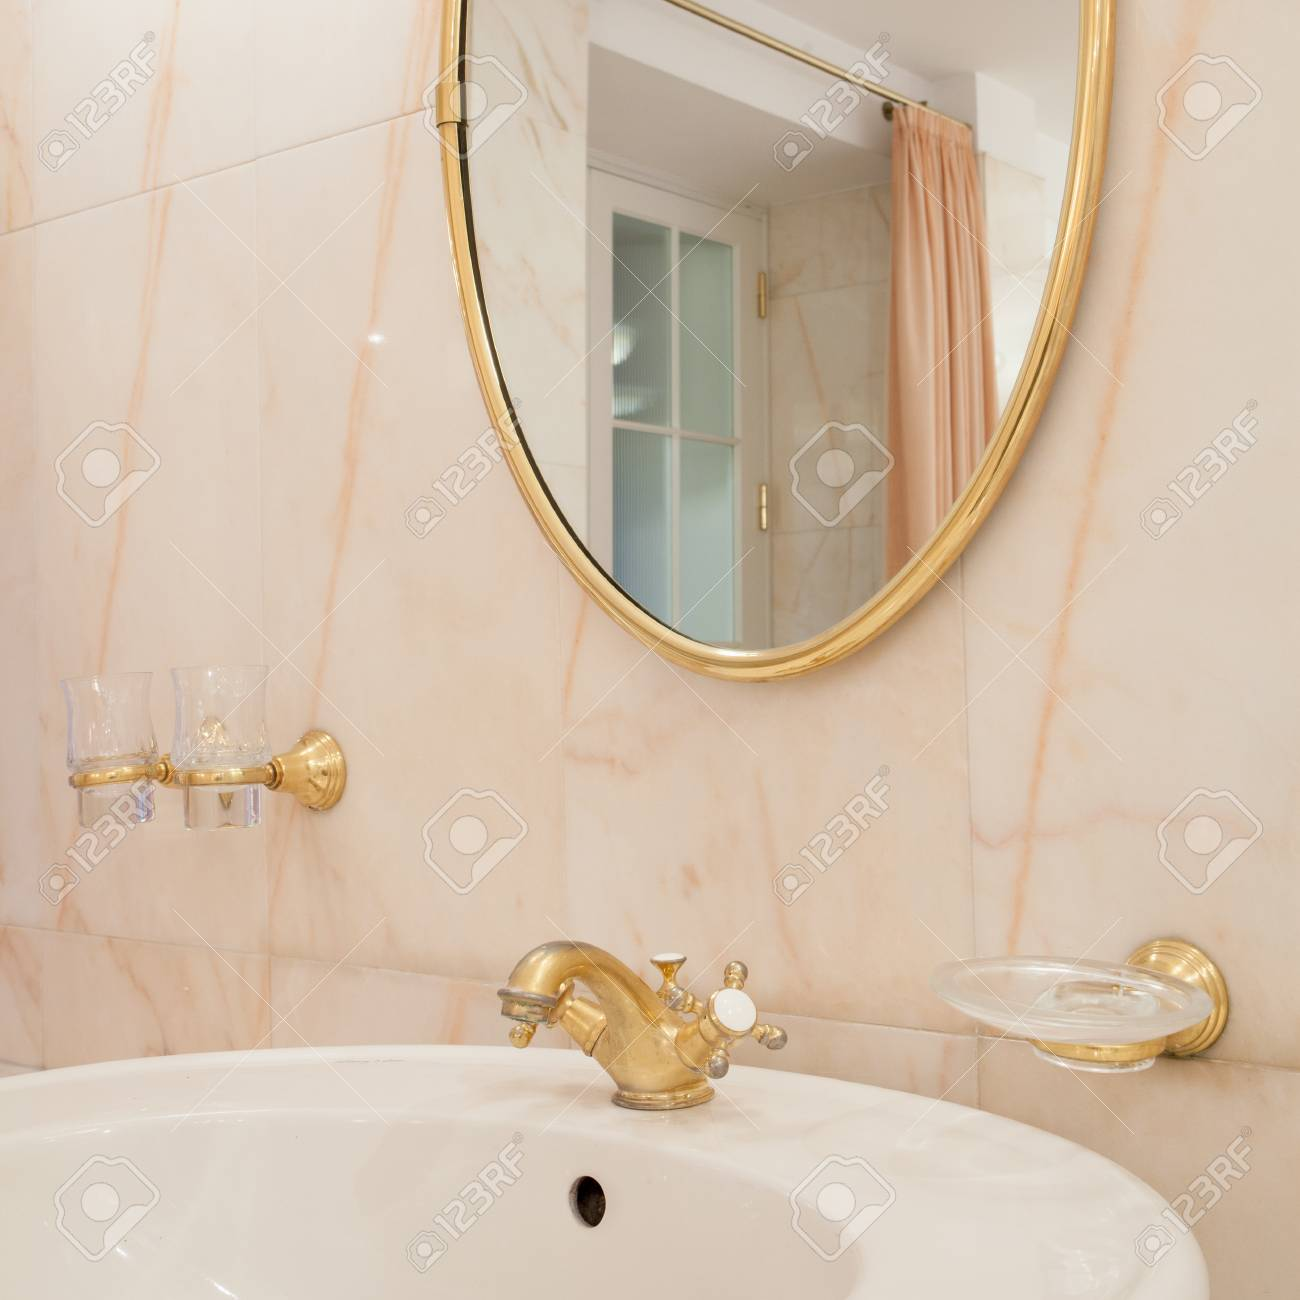 Oval Mirror With Gold Elements In Luxury Bathroom Stock Photo Picture And Royalty Free Image Image 55305471